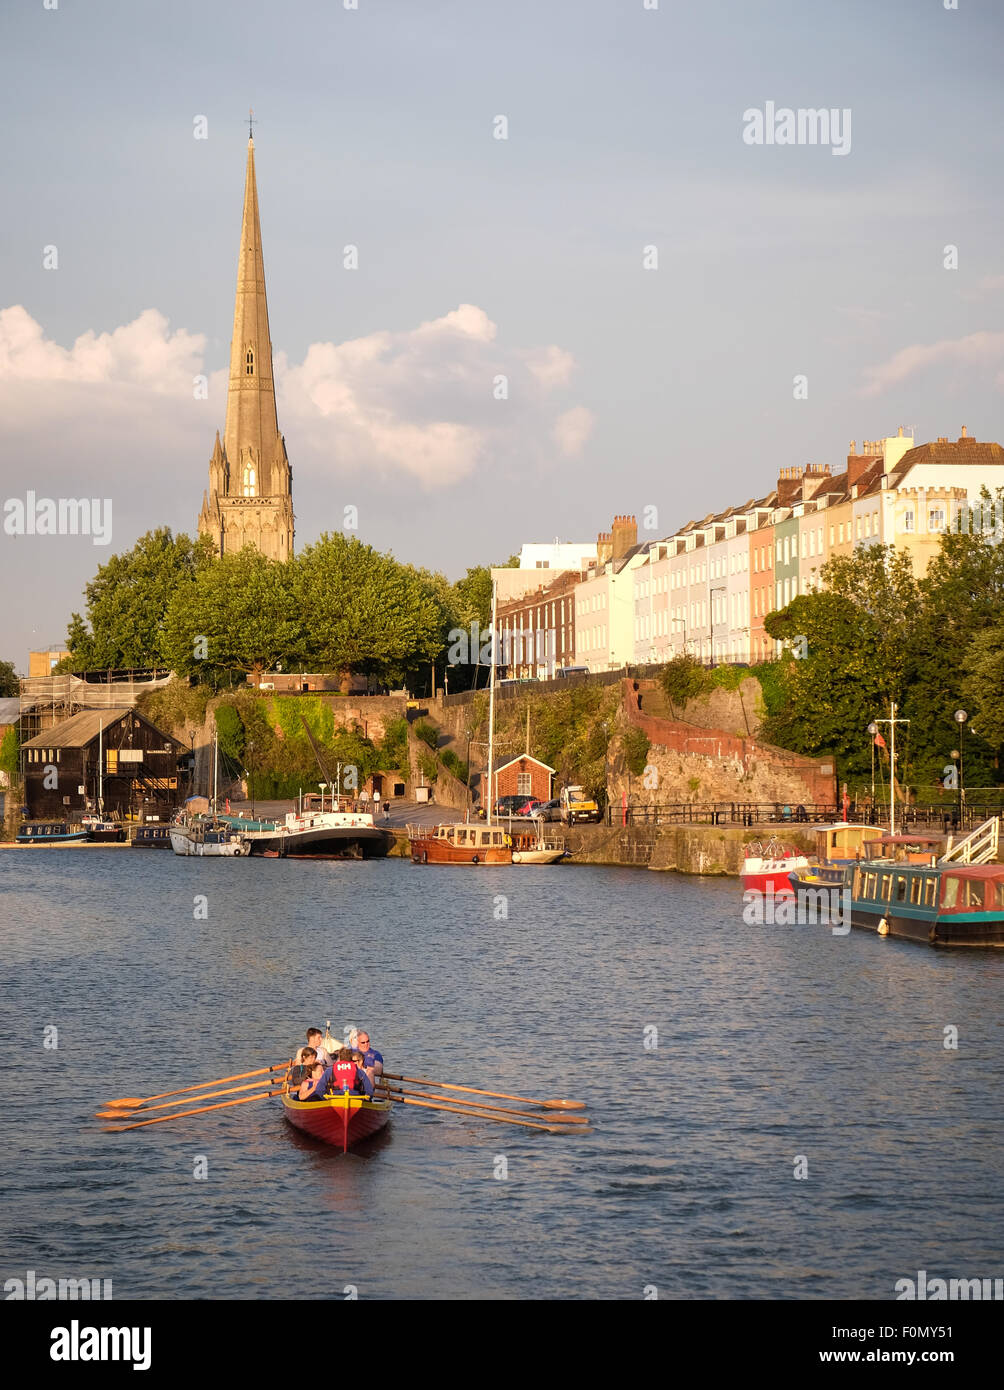 A view towards Redcliffe as gig rowers row on the floating harbour in Bristol in evening sunlight - Stock Image